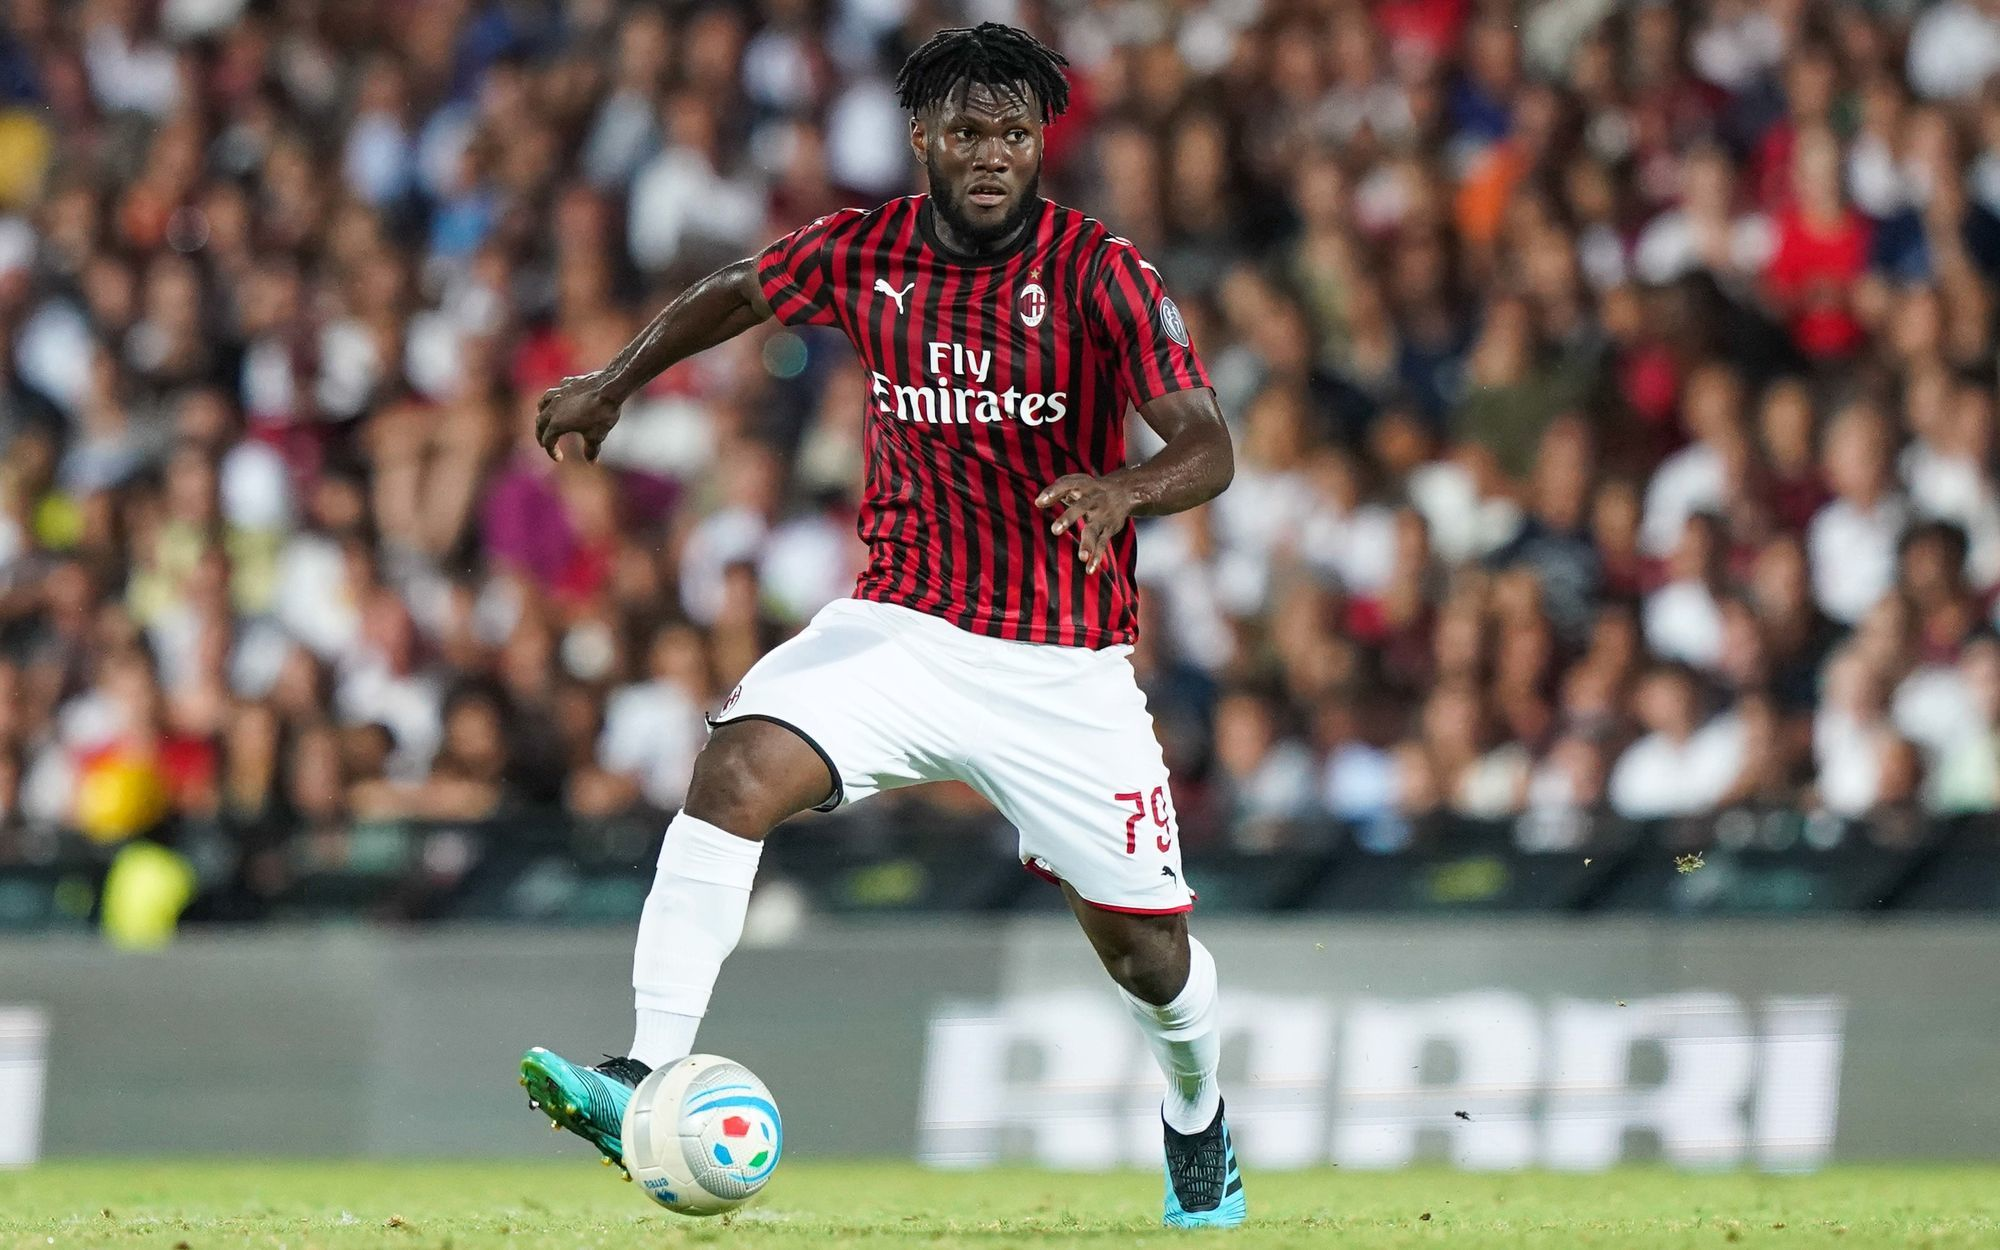 Franck Kessie during the friendly match between Cesena and AC Milan on August 17th, 2019. Photo: LaPresse / Icon Sport